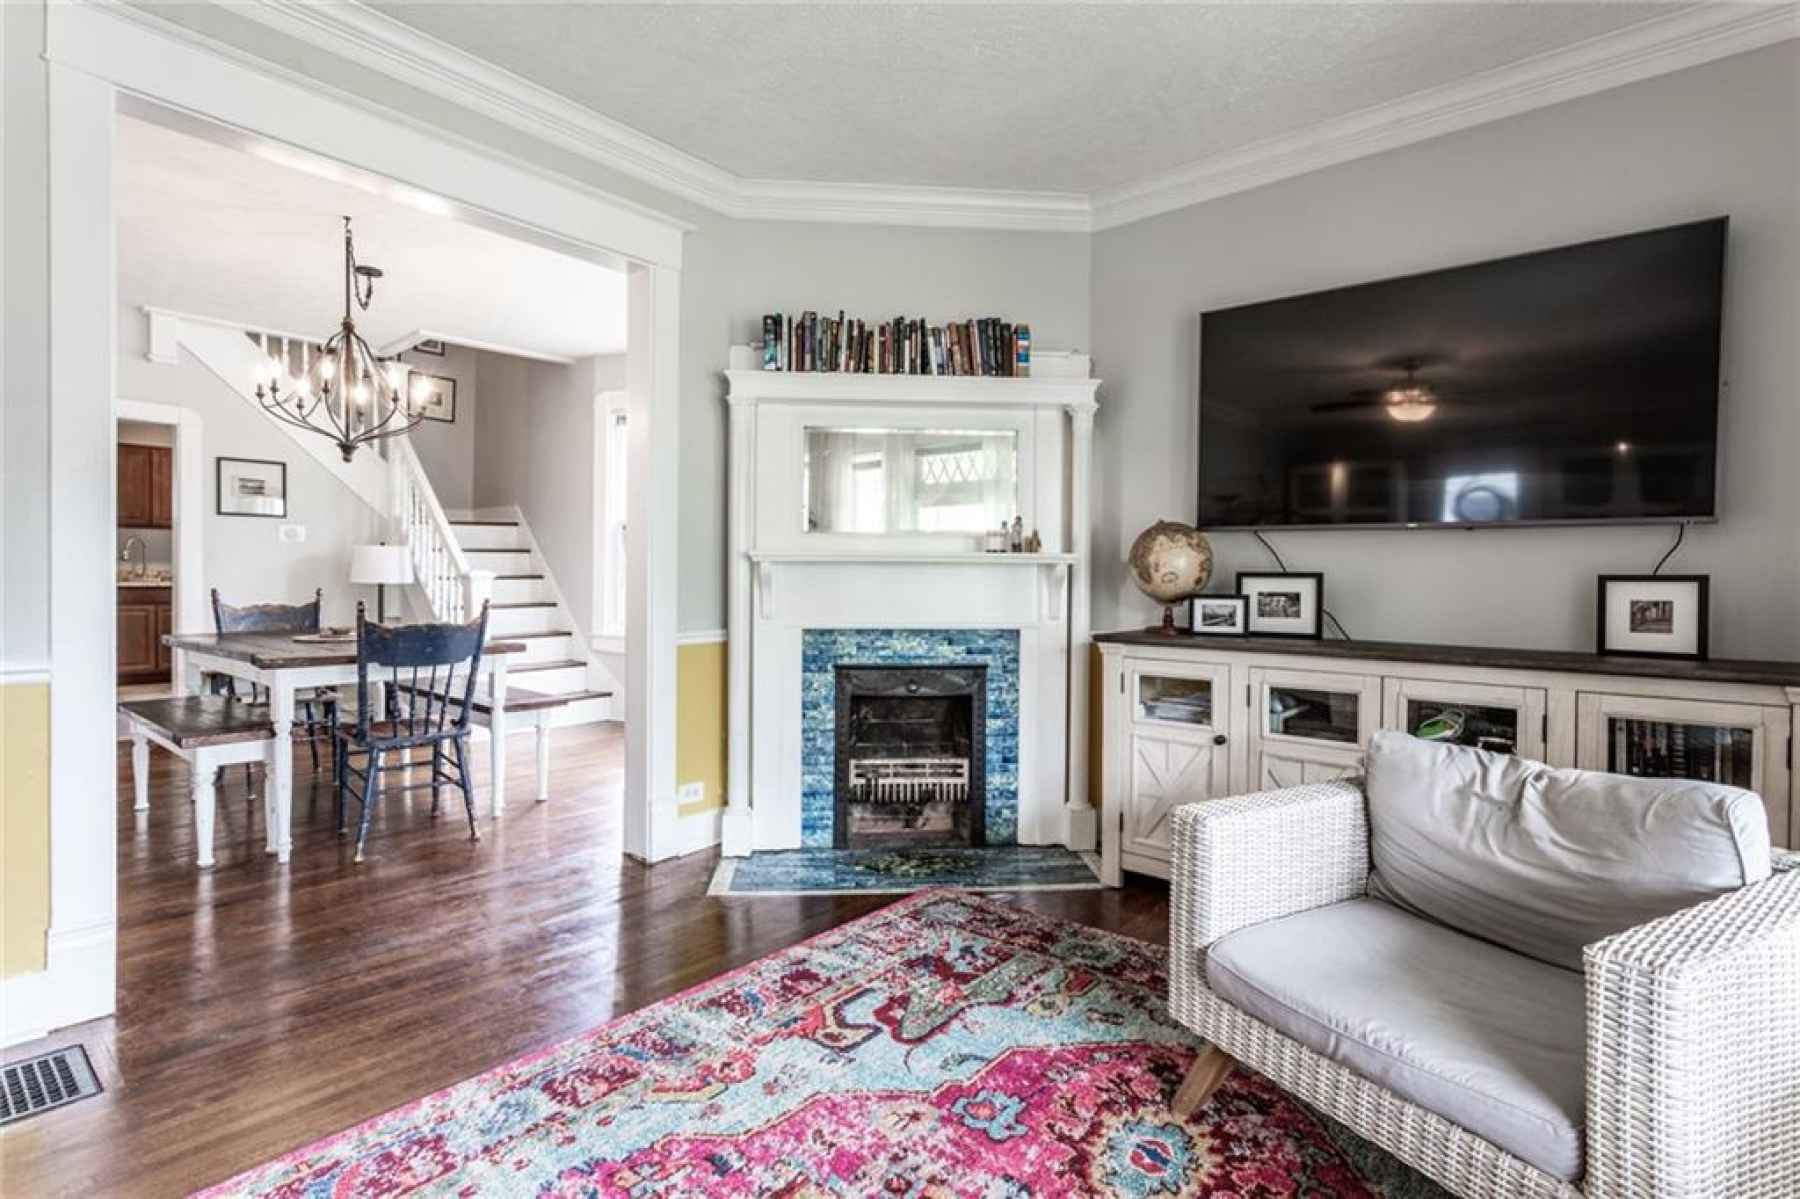 Original hardwood floors have been preserved beautifully and the custom, tile mantle adds charming p